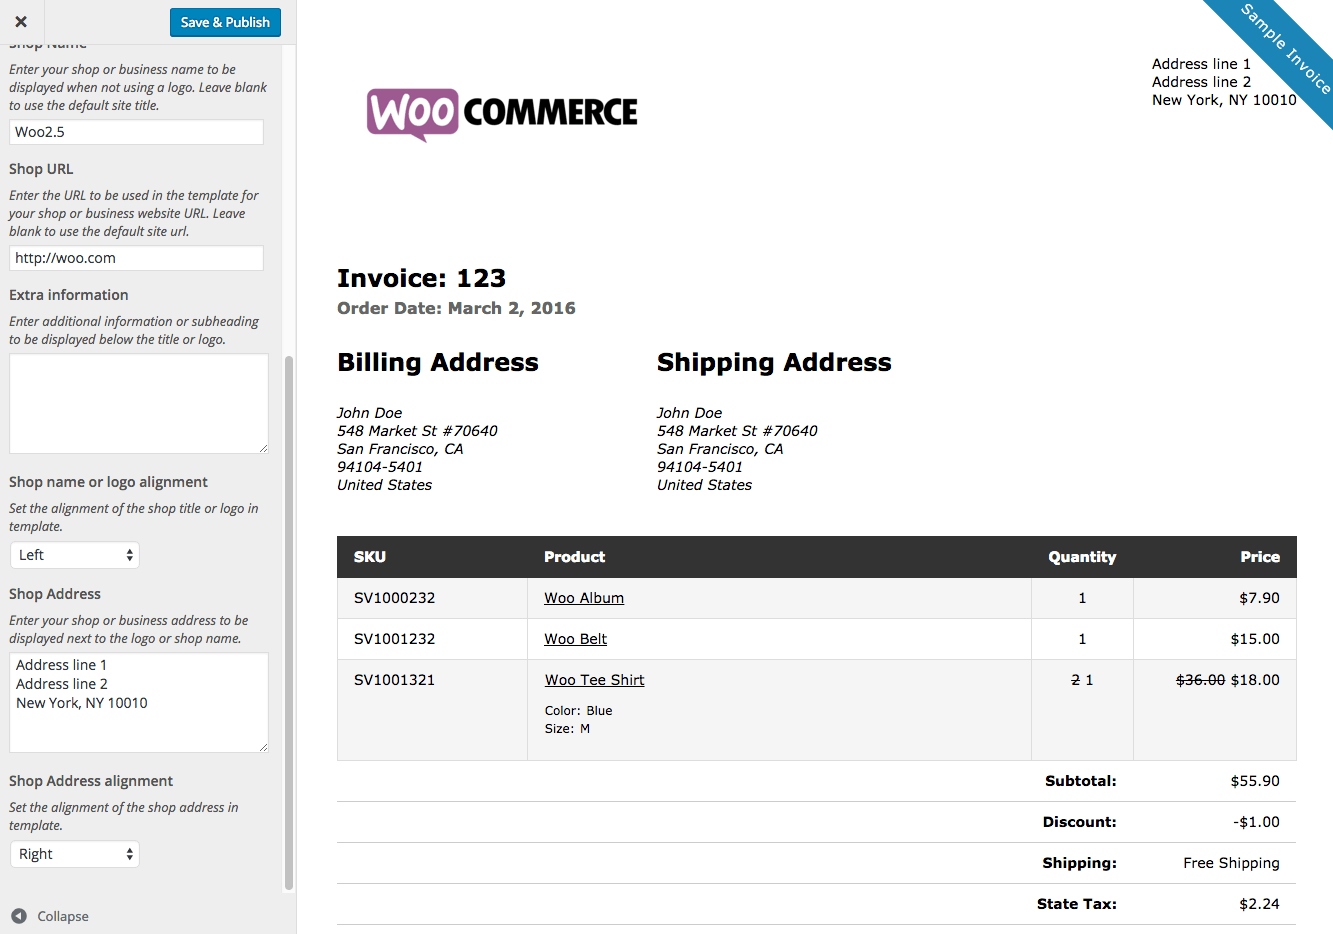 Sandiegolocksmithsus  Picturesque Woocommerce Print Invoices Amp Packing Lists  Woocommerce Docs With Magnificent Woocommerce Print Invoices  Packing Lists Customizer With Easy On The Eye Walmart Return Policy Without Receipt Also Best Buy Receipt In Addition Printable Receipt And Service Tax Invoice As Well As Invoices Format Additionally United Airlines Receipt From Docswoocommercecom With Sandiegolocksmithsus  Magnificent Woocommerce Print Invoices Amp Packing Lists  Woocommerce Docs With Easy On The Eye Woocommerce Print Invoices  Packing Lists Customizer And Picturesque Walmart Return Policy Without Receipt Also Best Buy Receipt In Addition Printable Receipt From Docswoocommercecom